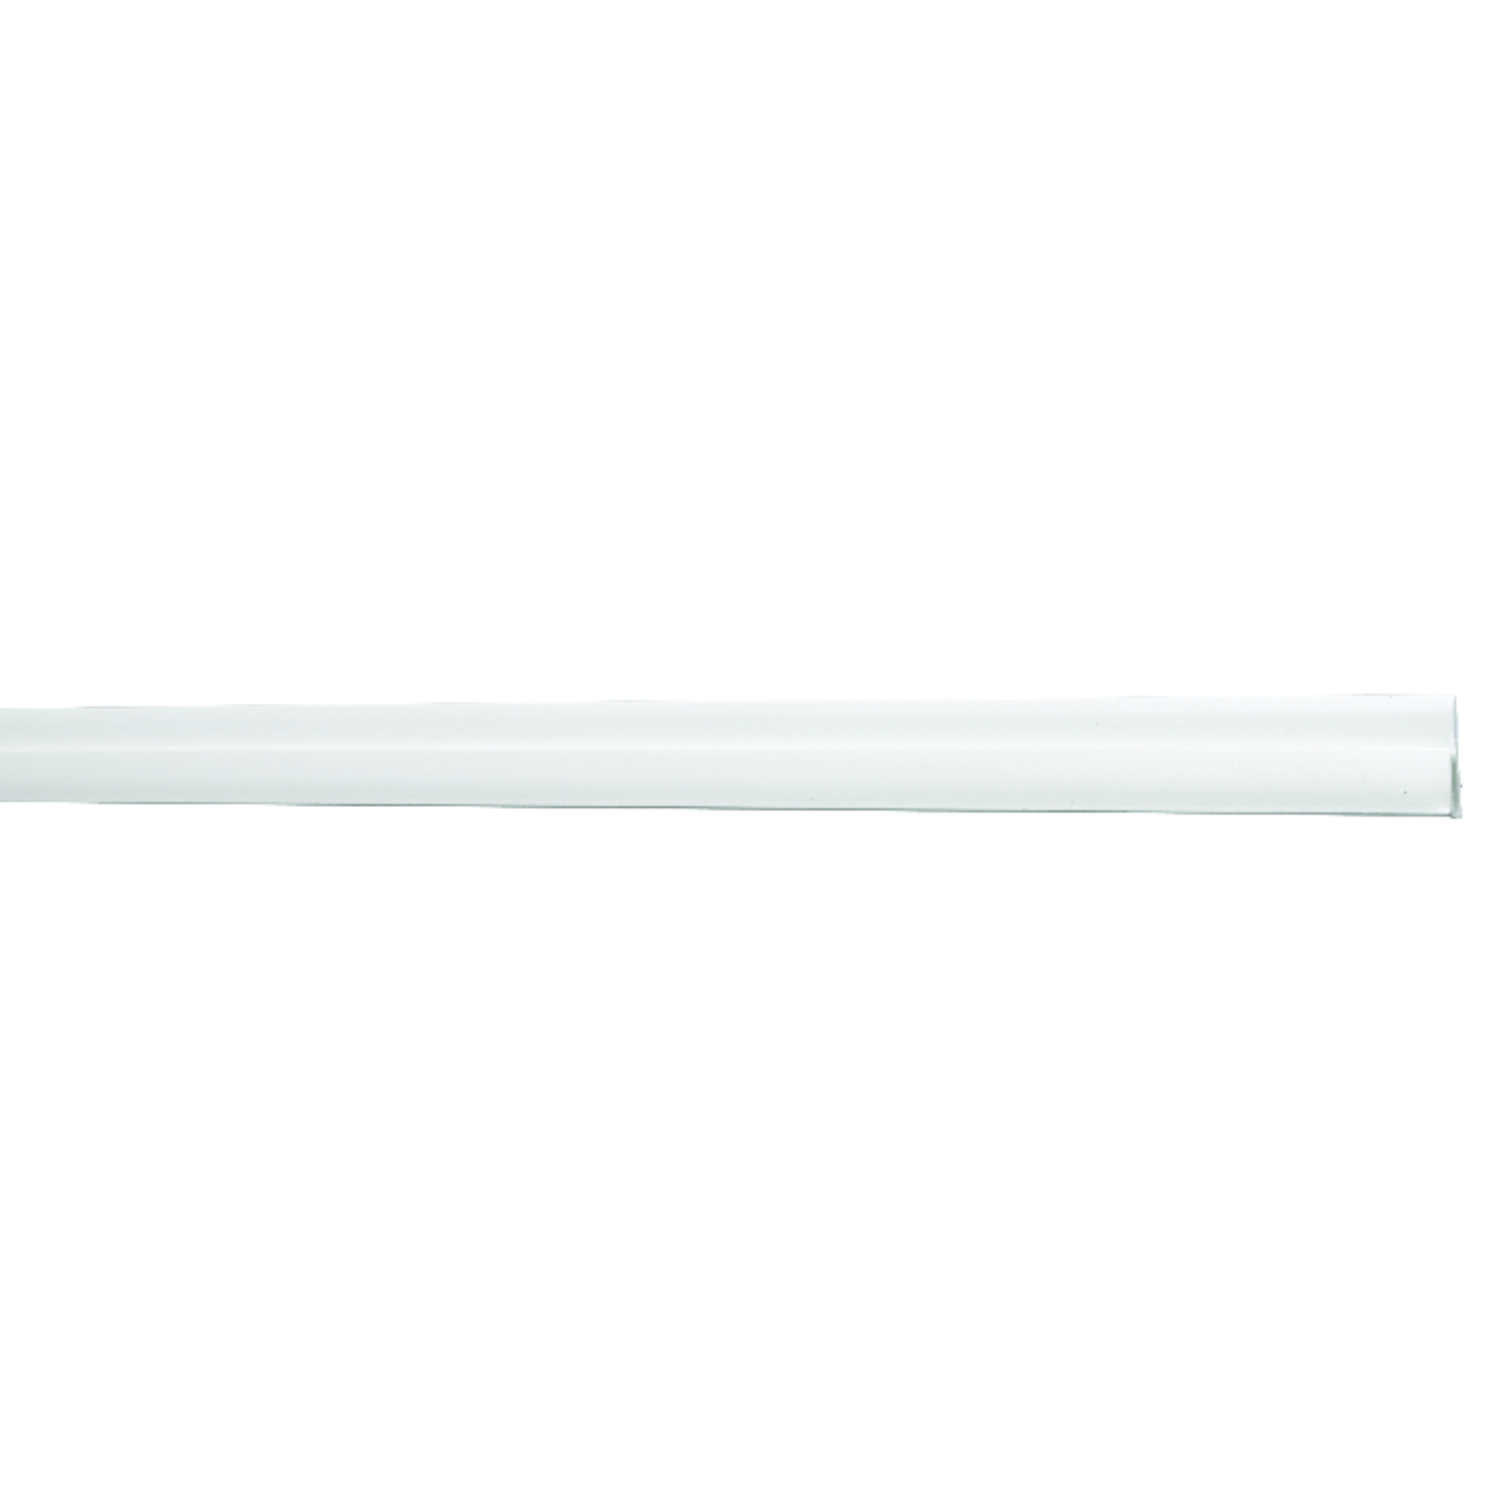 Sequentia  Crane Composites  .865 in.  x 96 ft. L Prefinished  White  Molding  Polypropylene